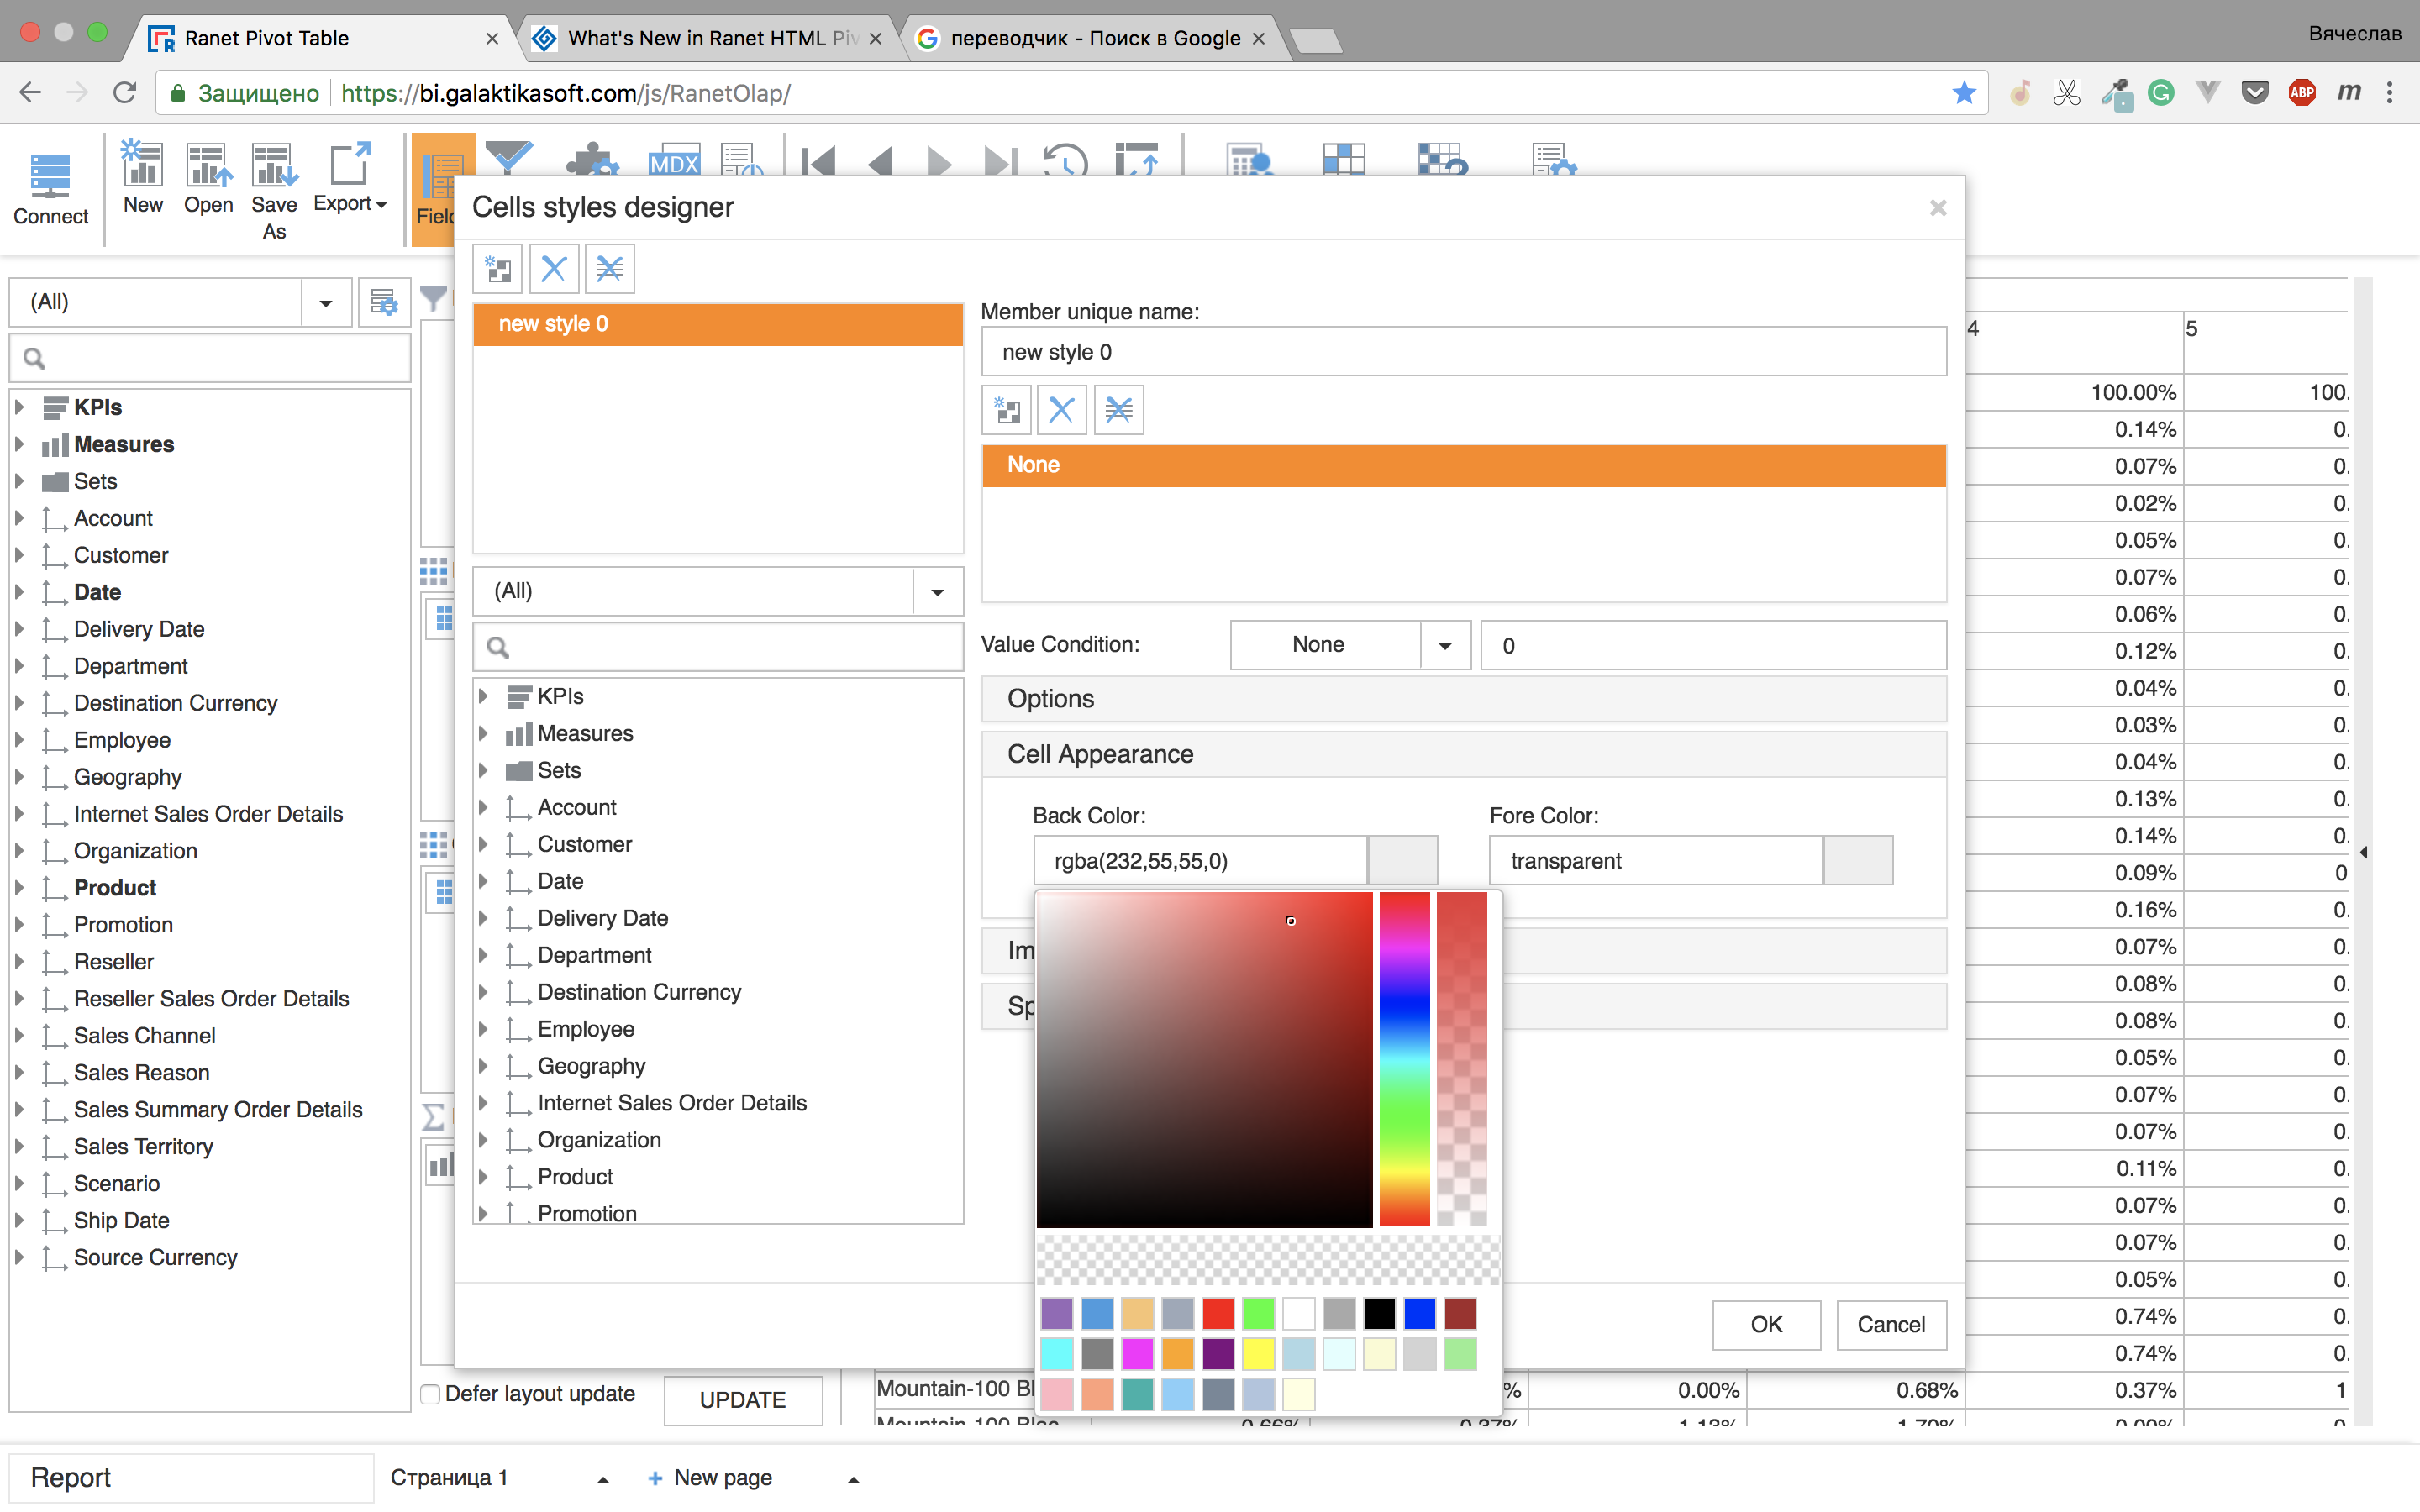 Colorpicker - Ranet OLAP